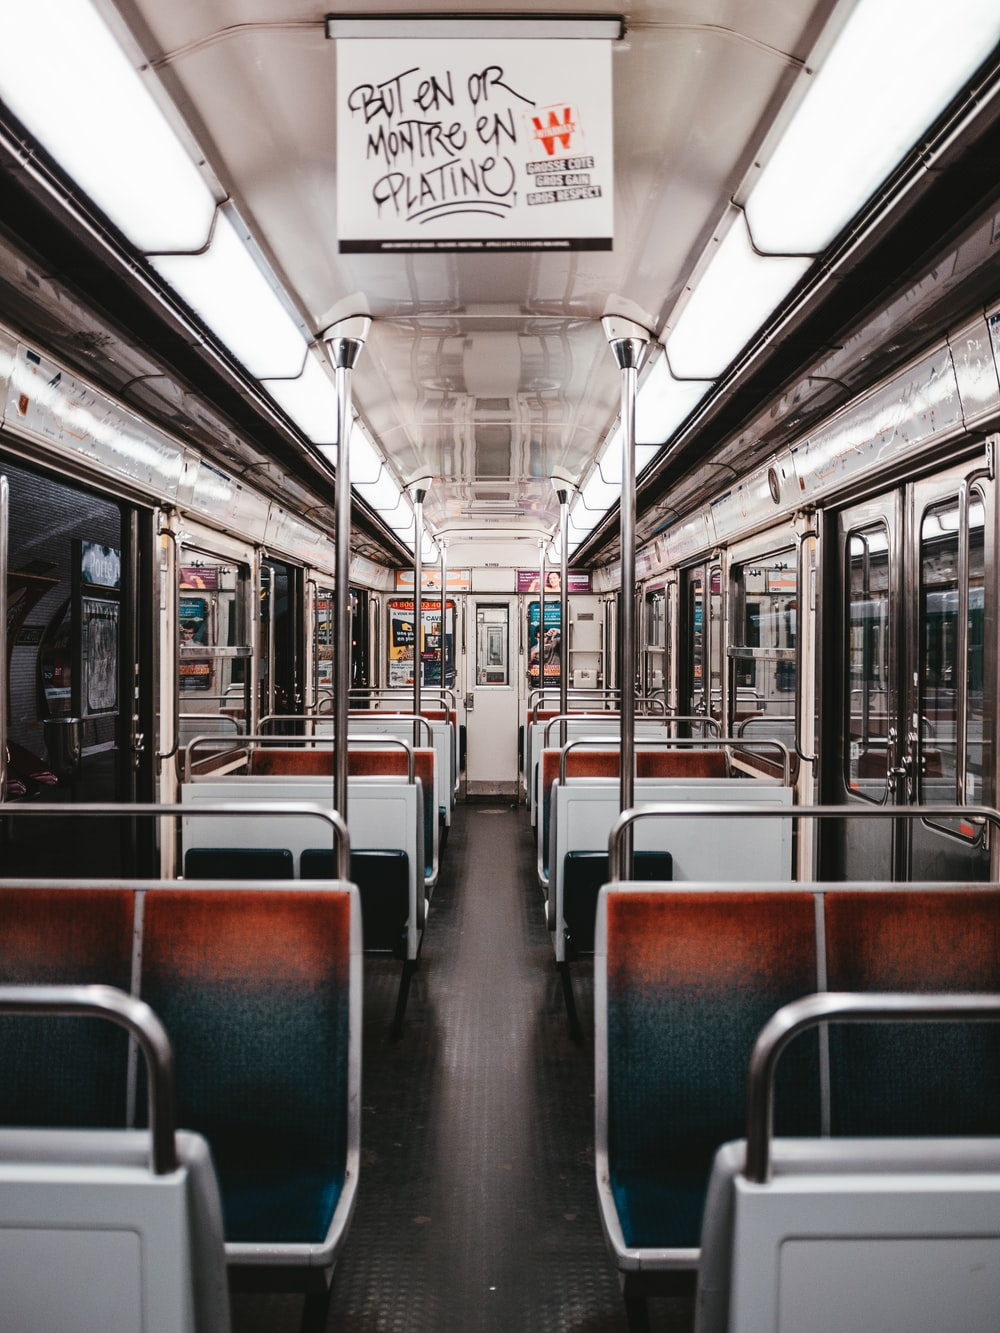 brown and teal subway train seats